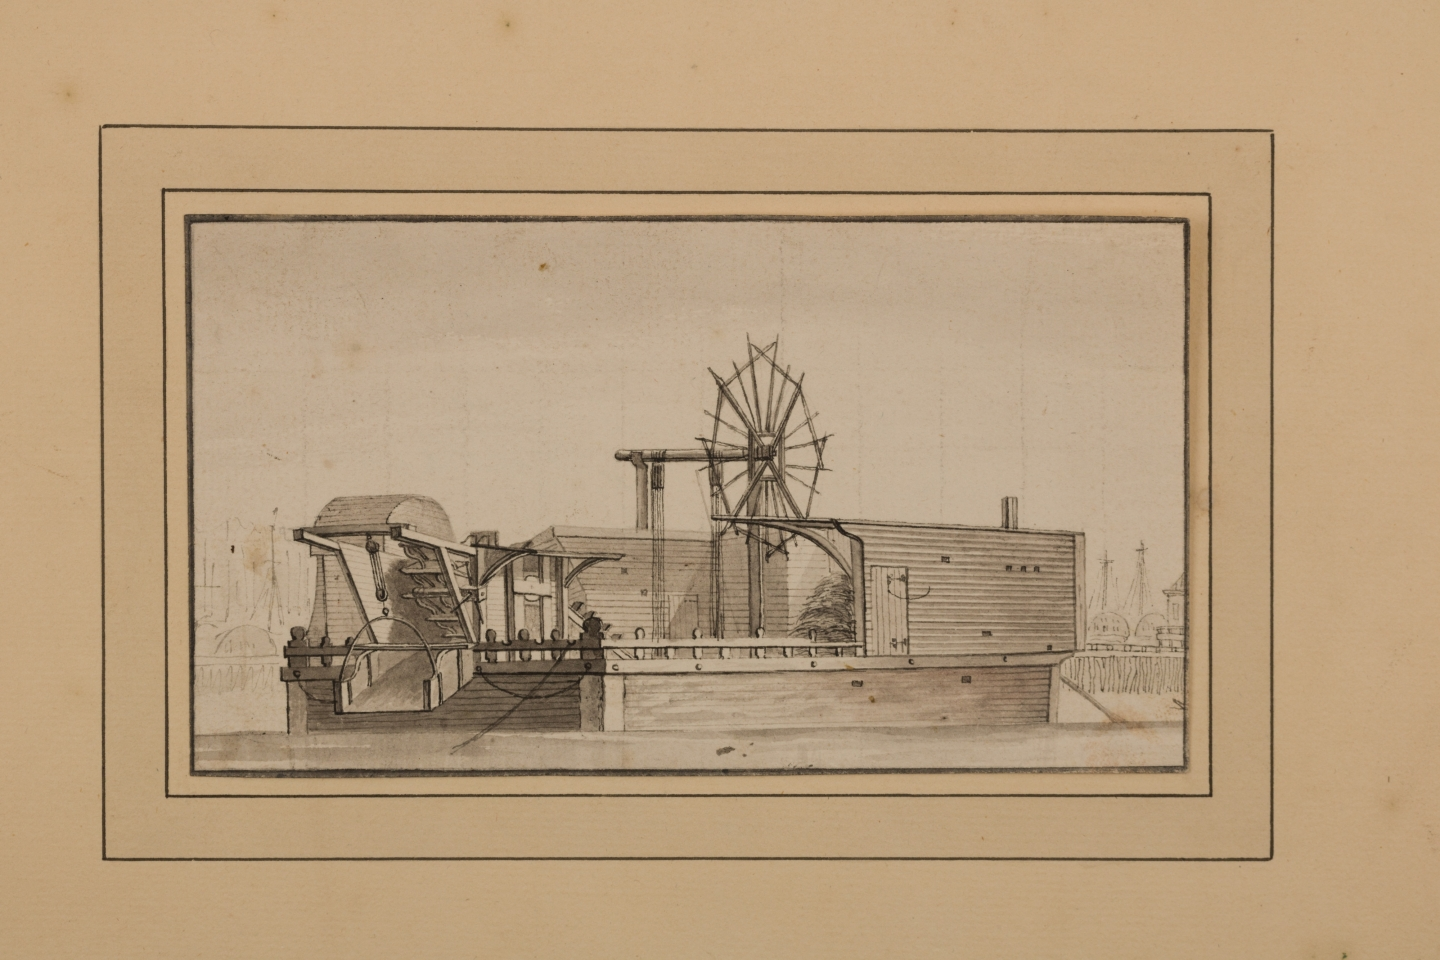 Paulus van Liender (Utrecht, 1731-Harlem, 1797) (attr. to) The small mud mill from Amsterdam